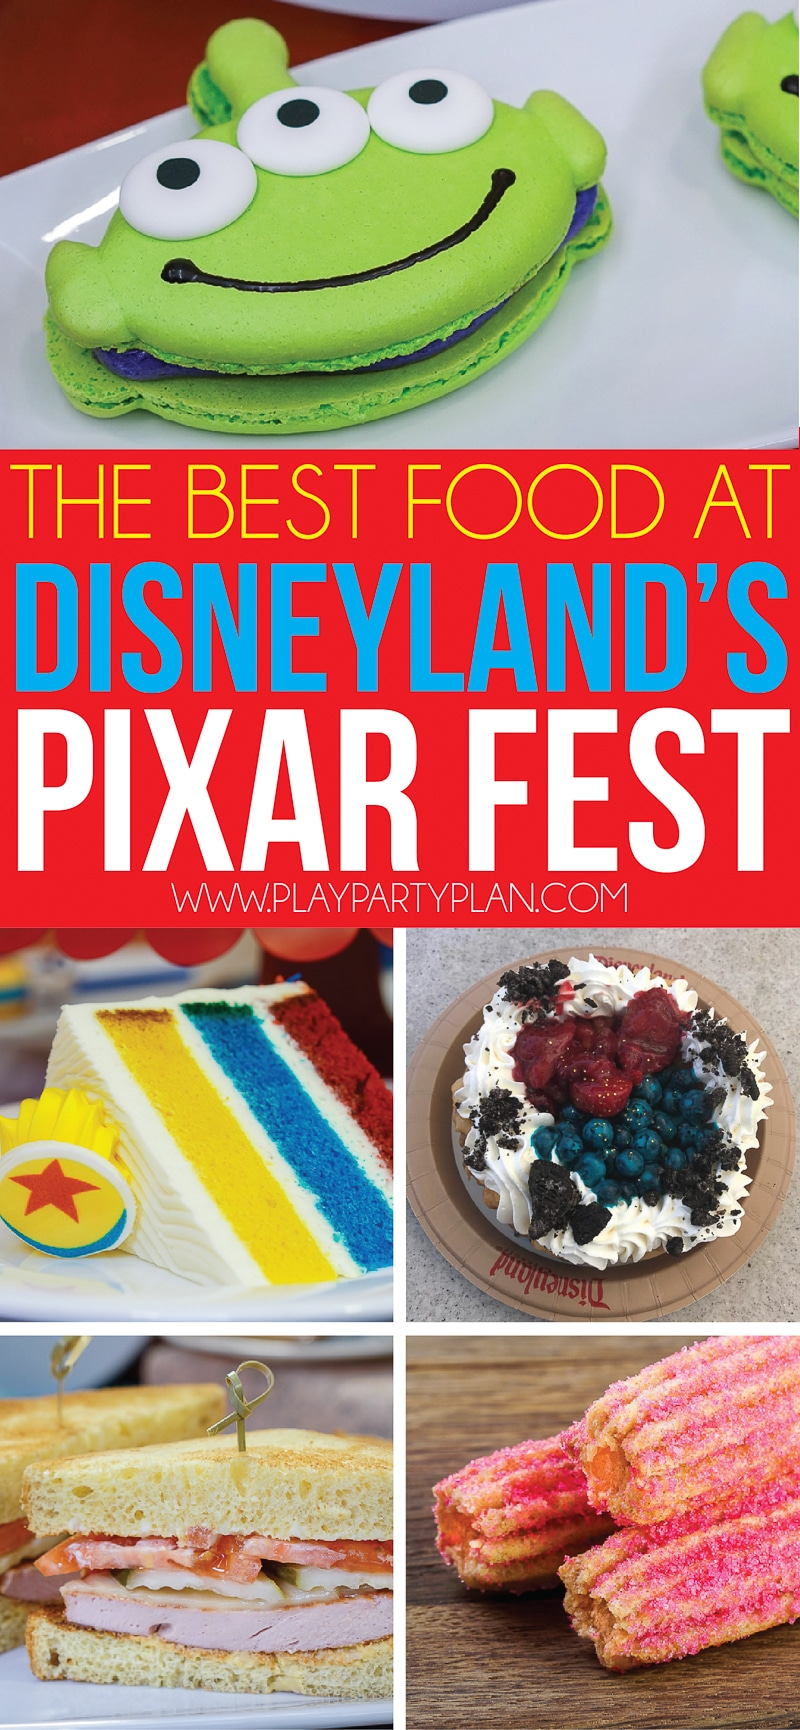 The best things to eat at Disneyland's Pixar Fest! A guide to all the best food and drinks in the parks!